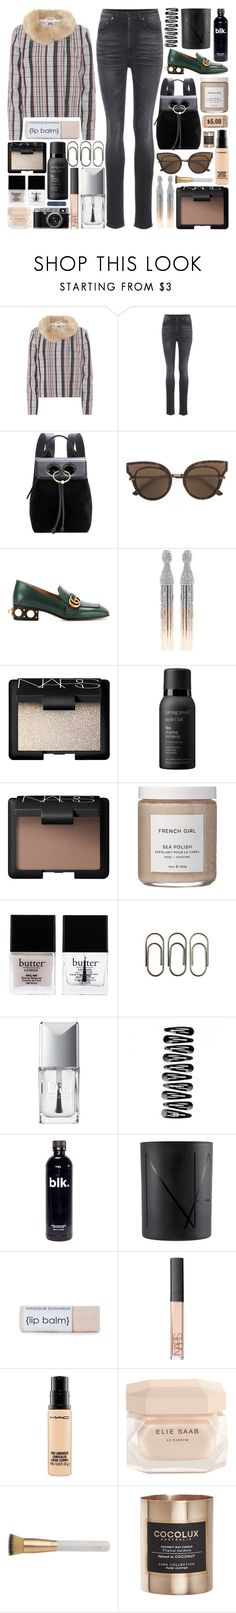 """So, if you loved me, how was I supposed to know?"" by pure-and-valuable ❤ liked on Polyvore featuring Shrimps, Yves Saint Laurent, J.W. Anderson, Bottega Veneta, Gucci, Oscar de la Renta, NARS Cosmetics, Living Proof, French Girl and Butter London"